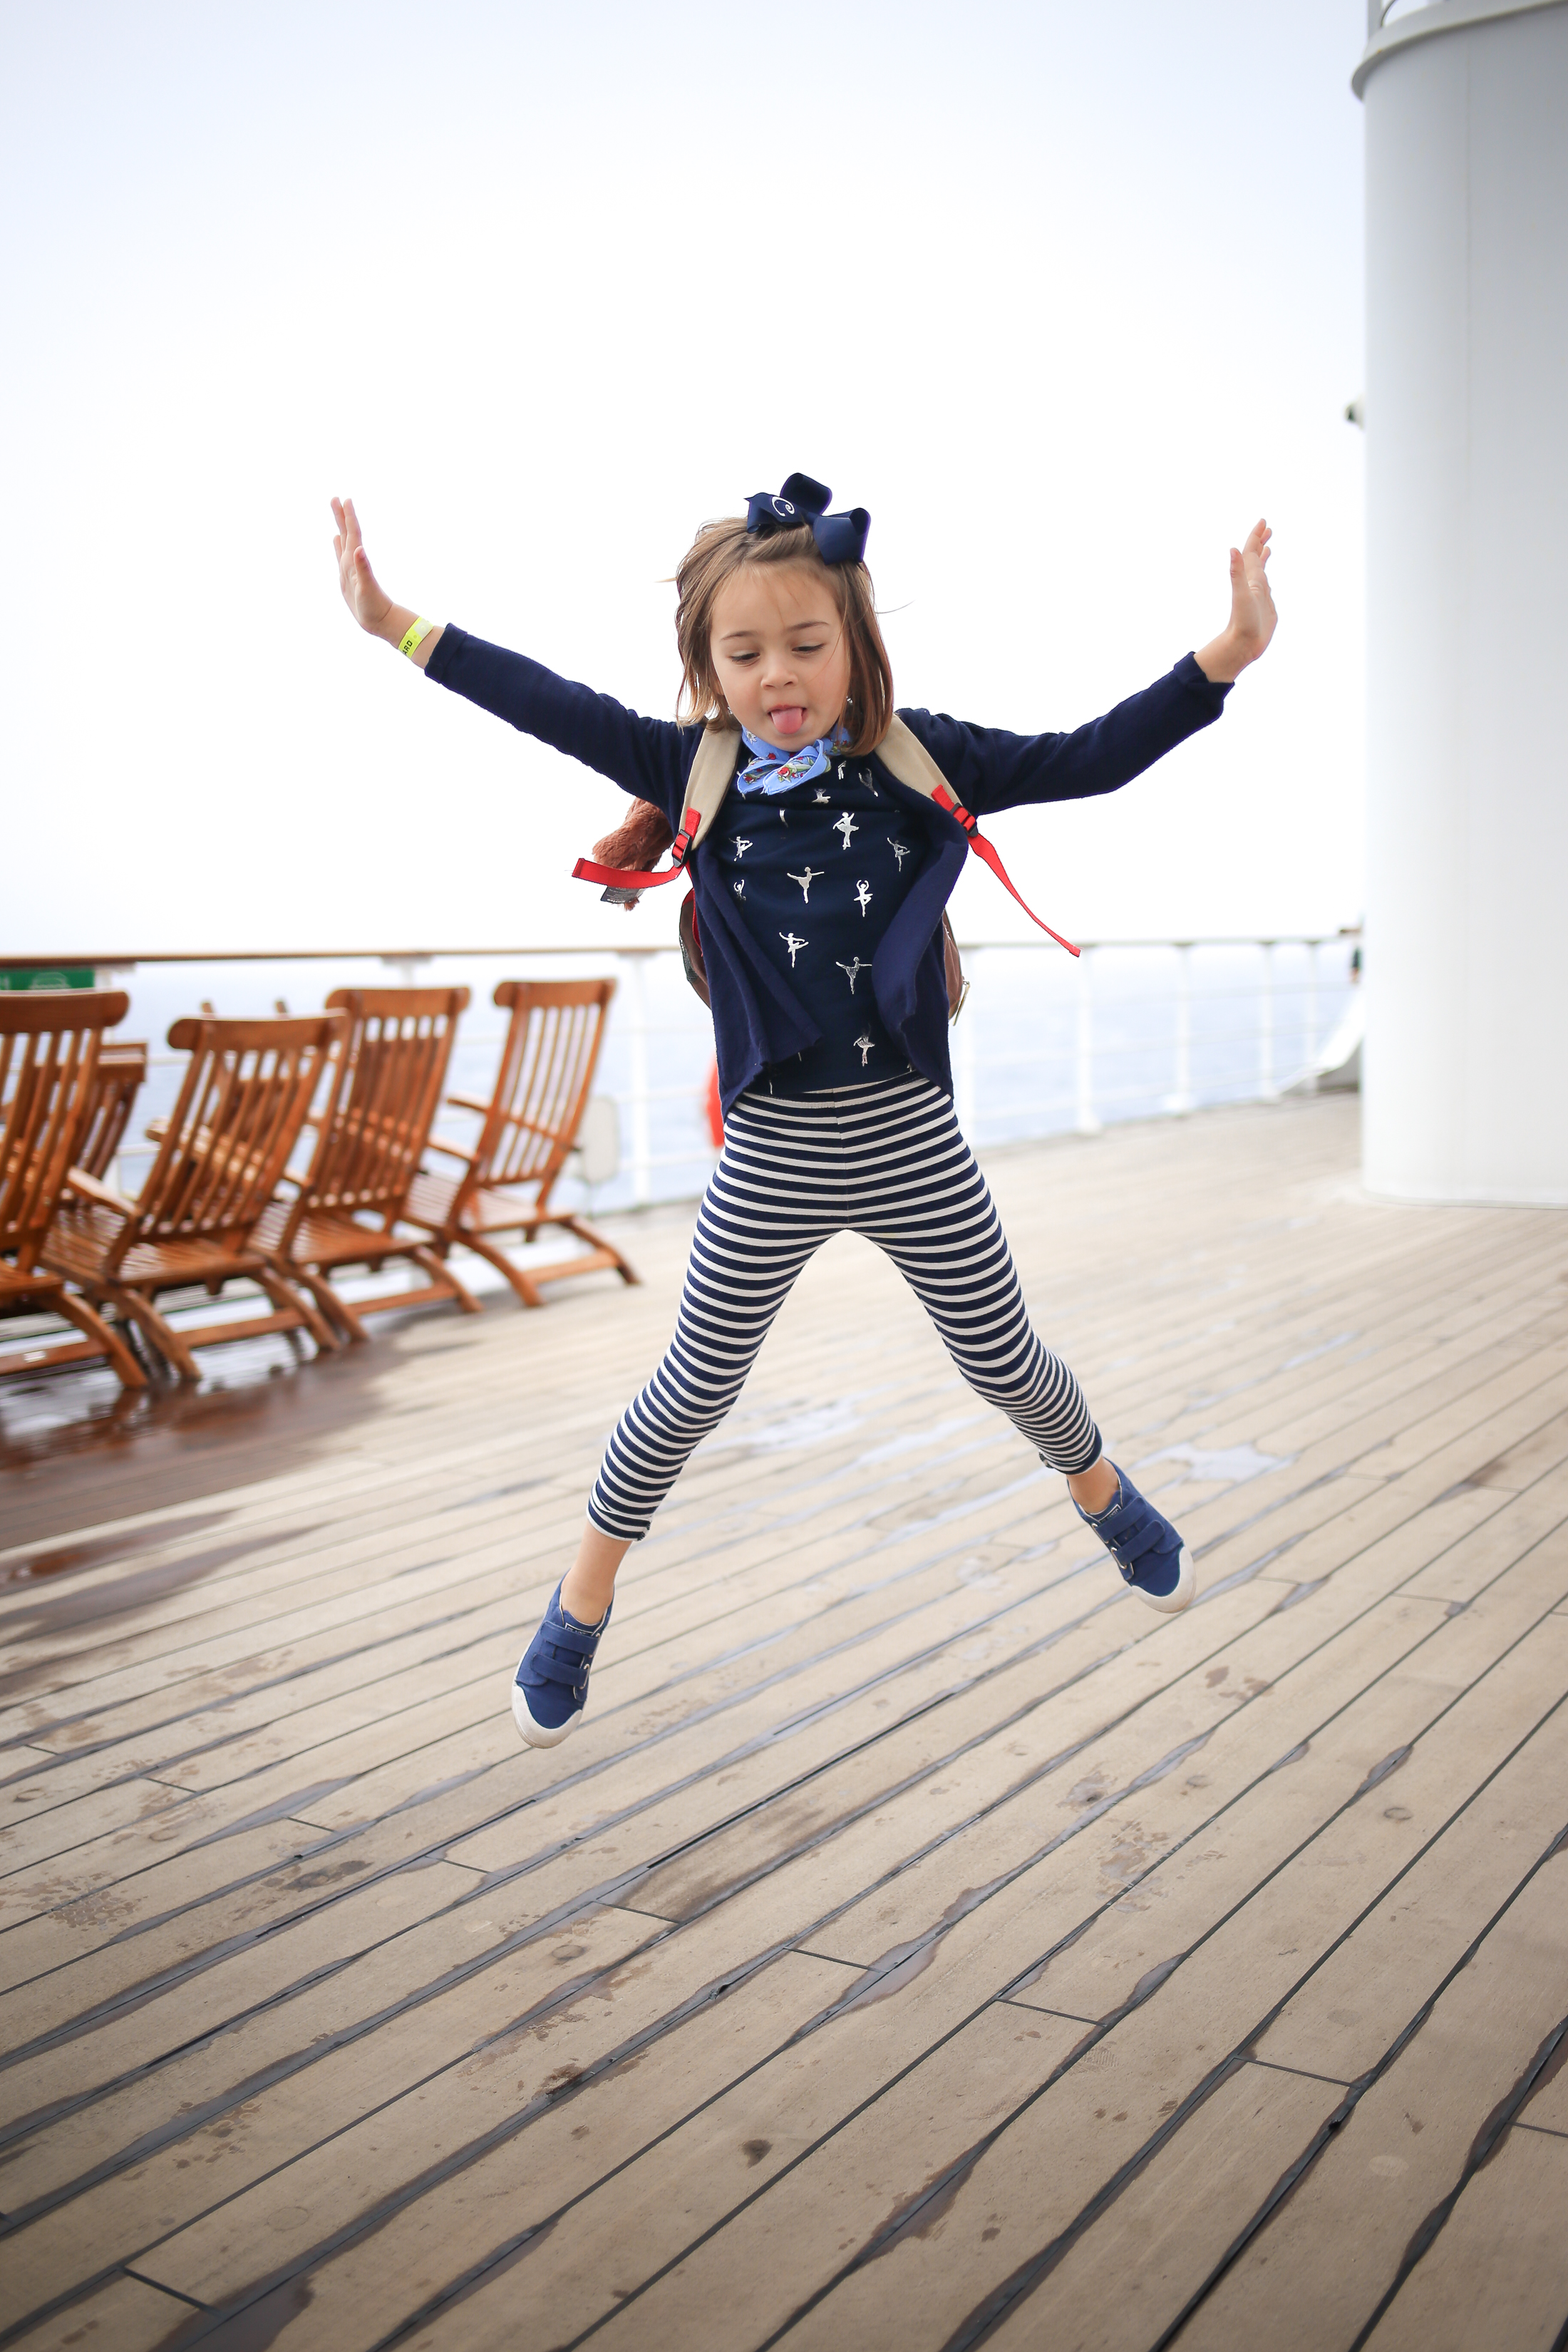 Children and adventures aboard the Queen Mary 2.